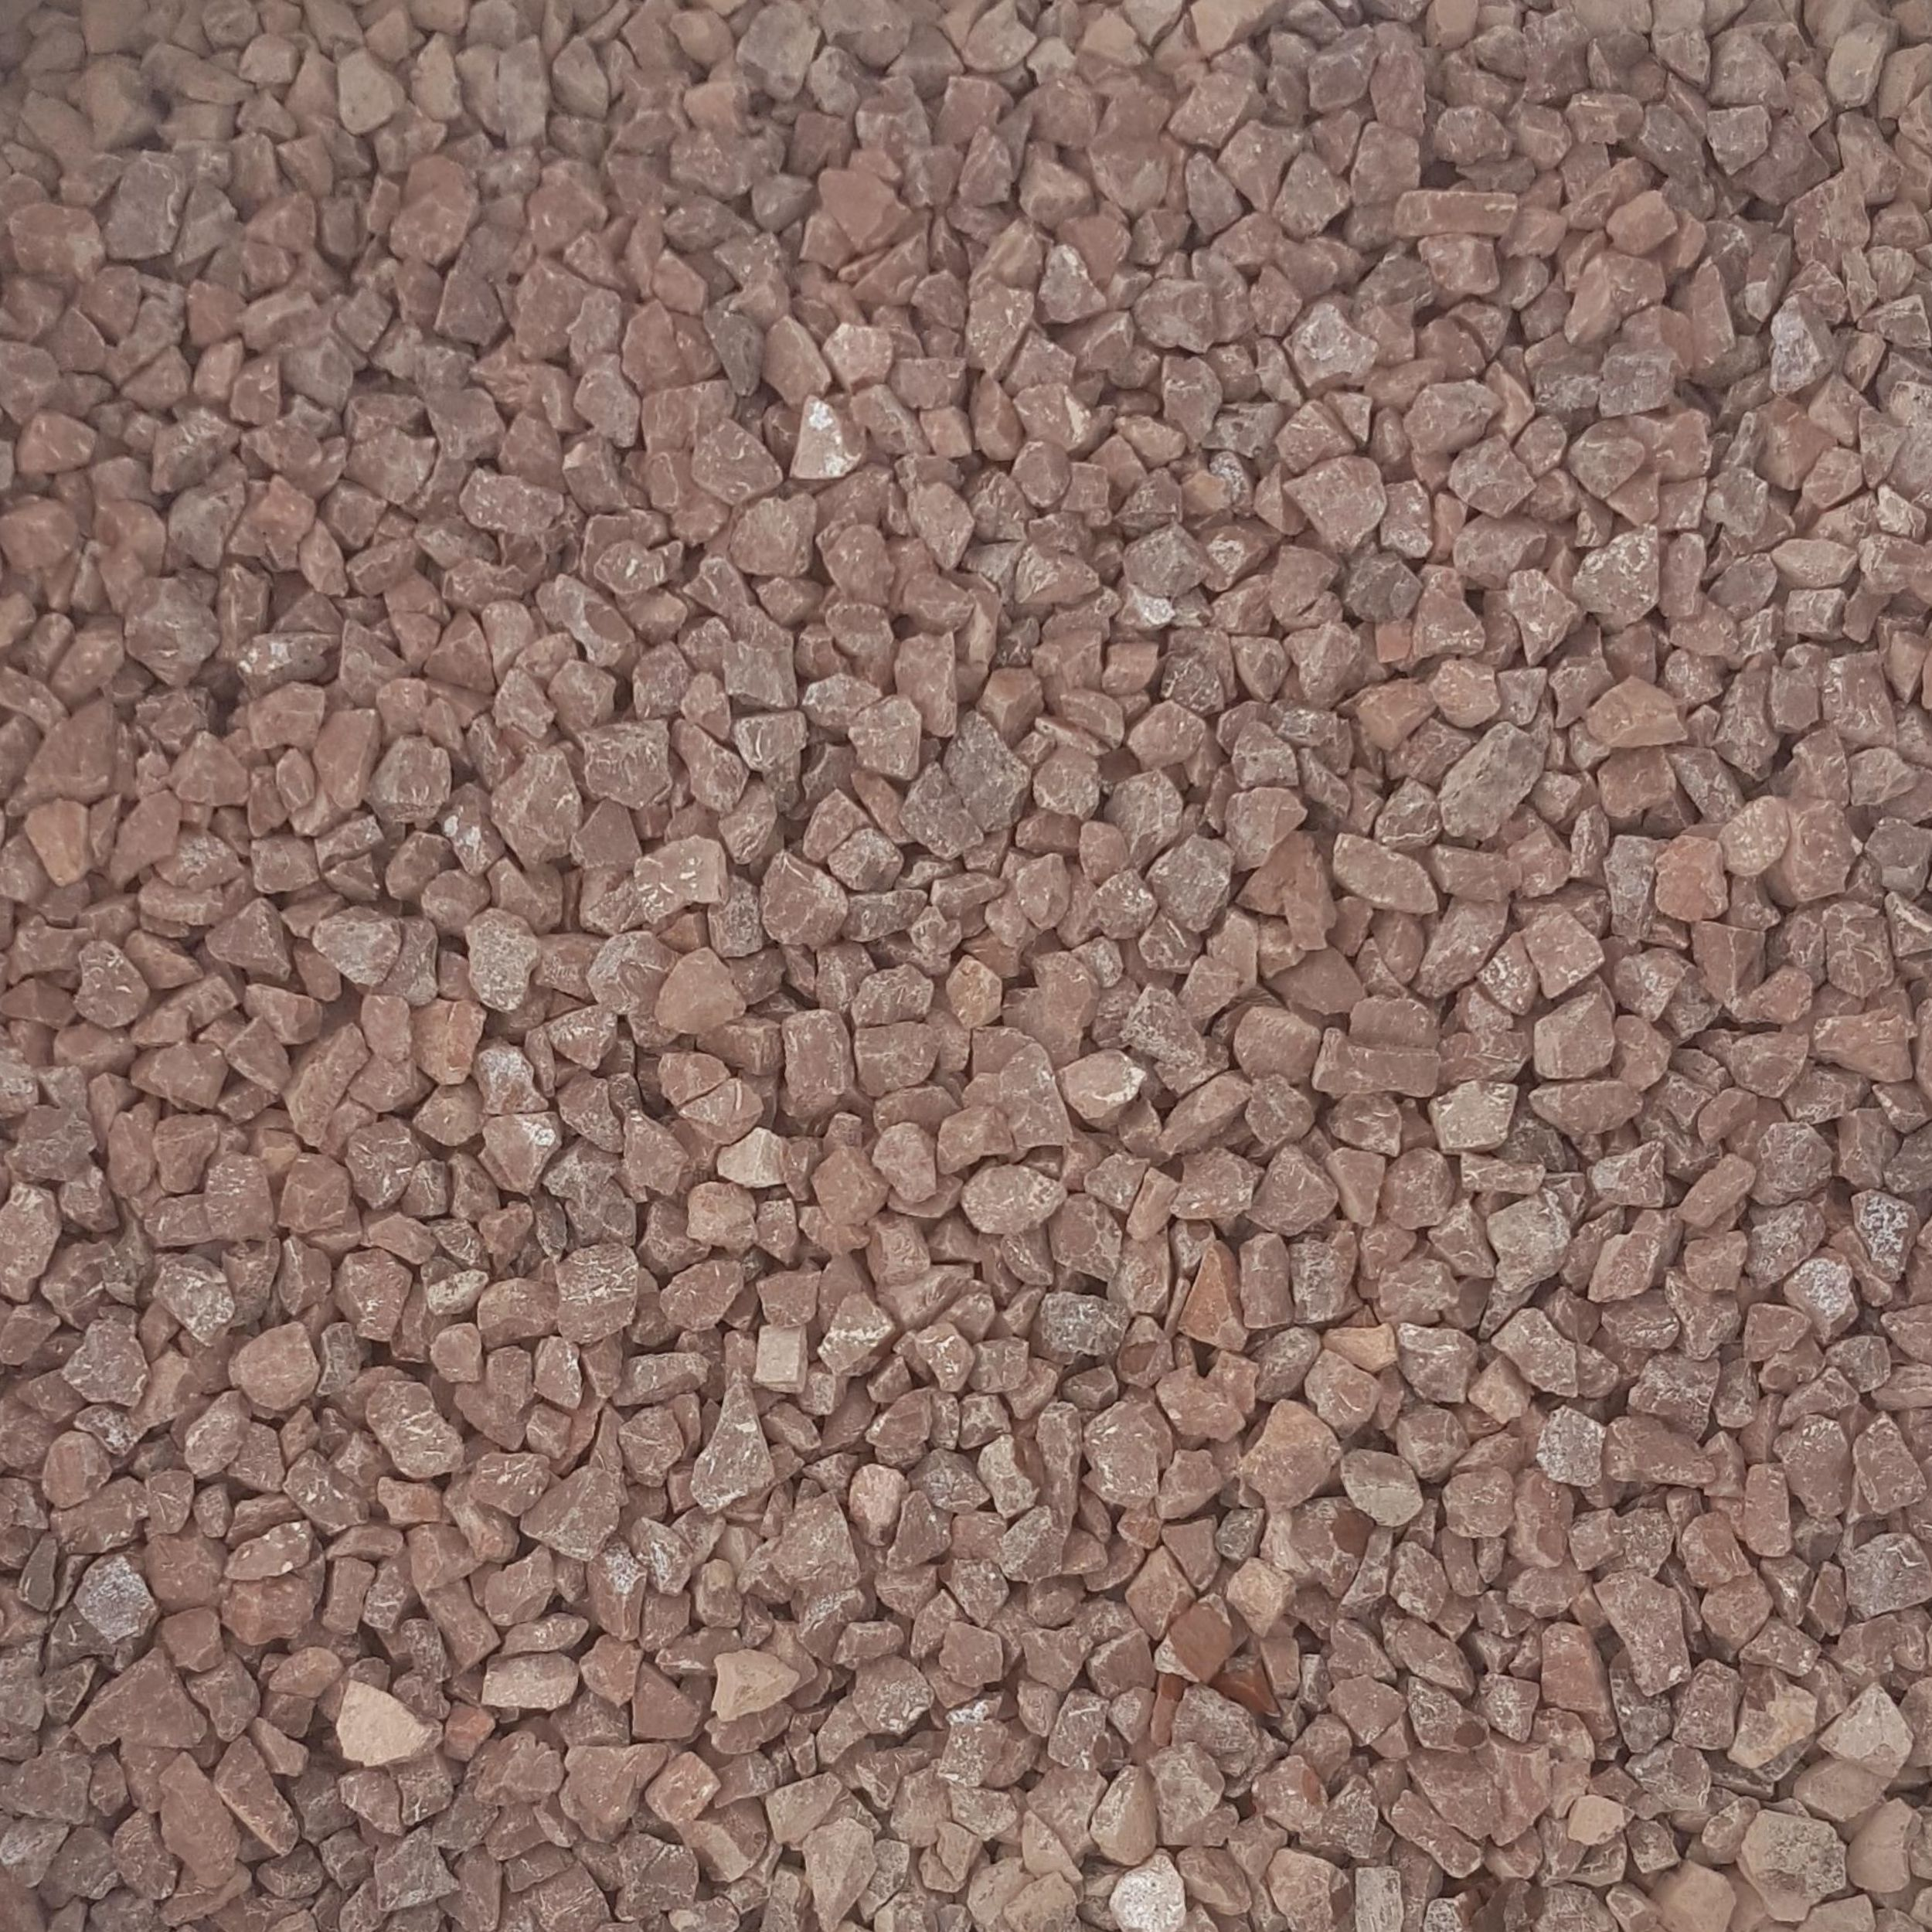 Red Chips 20mm Dry Mitchell Turf